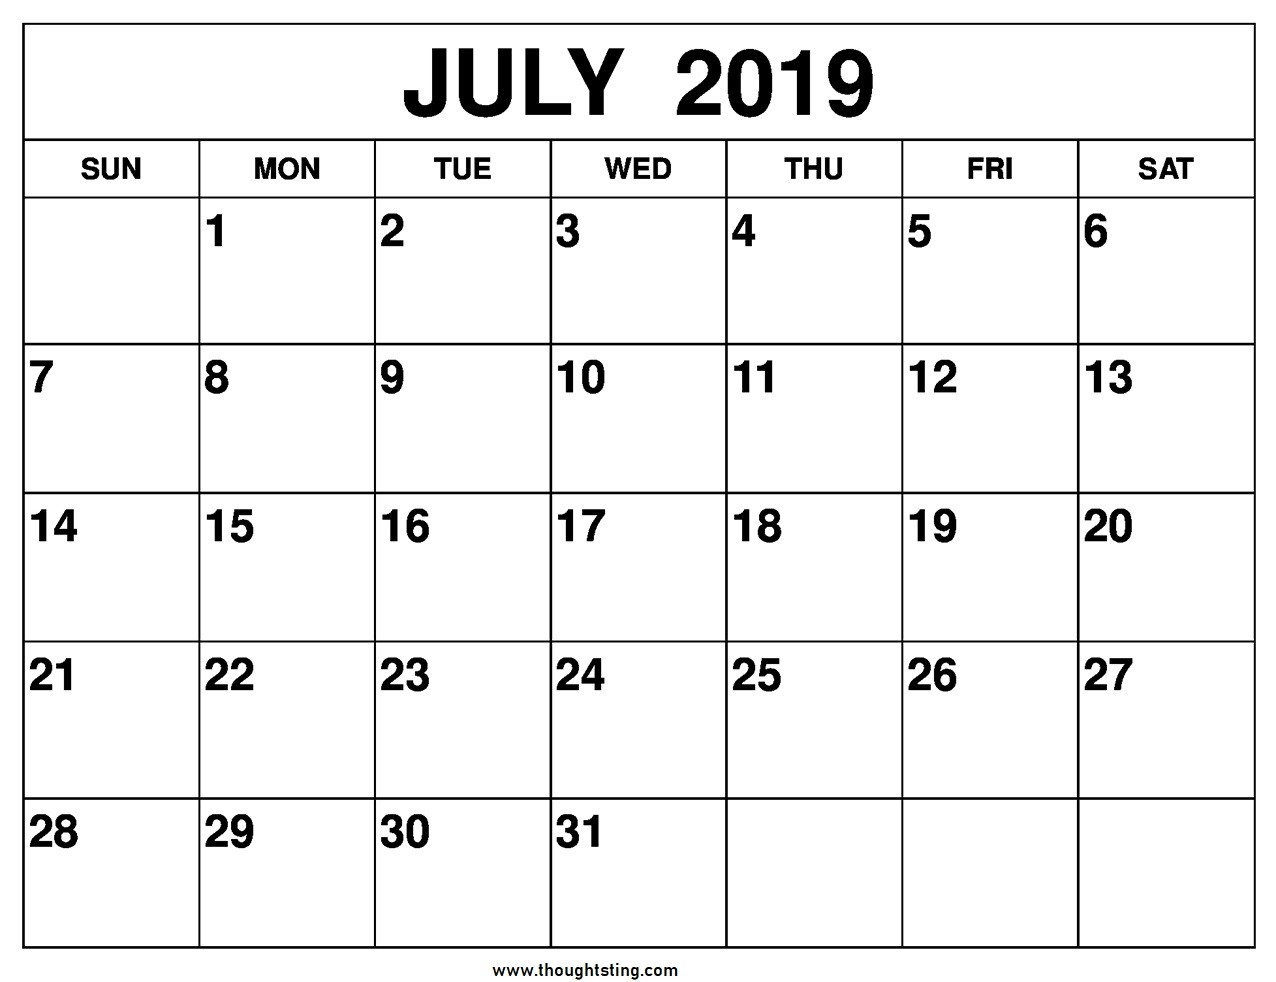 July 2019 Calendar Printable One Page Template - Free  Full Page Calendar Template